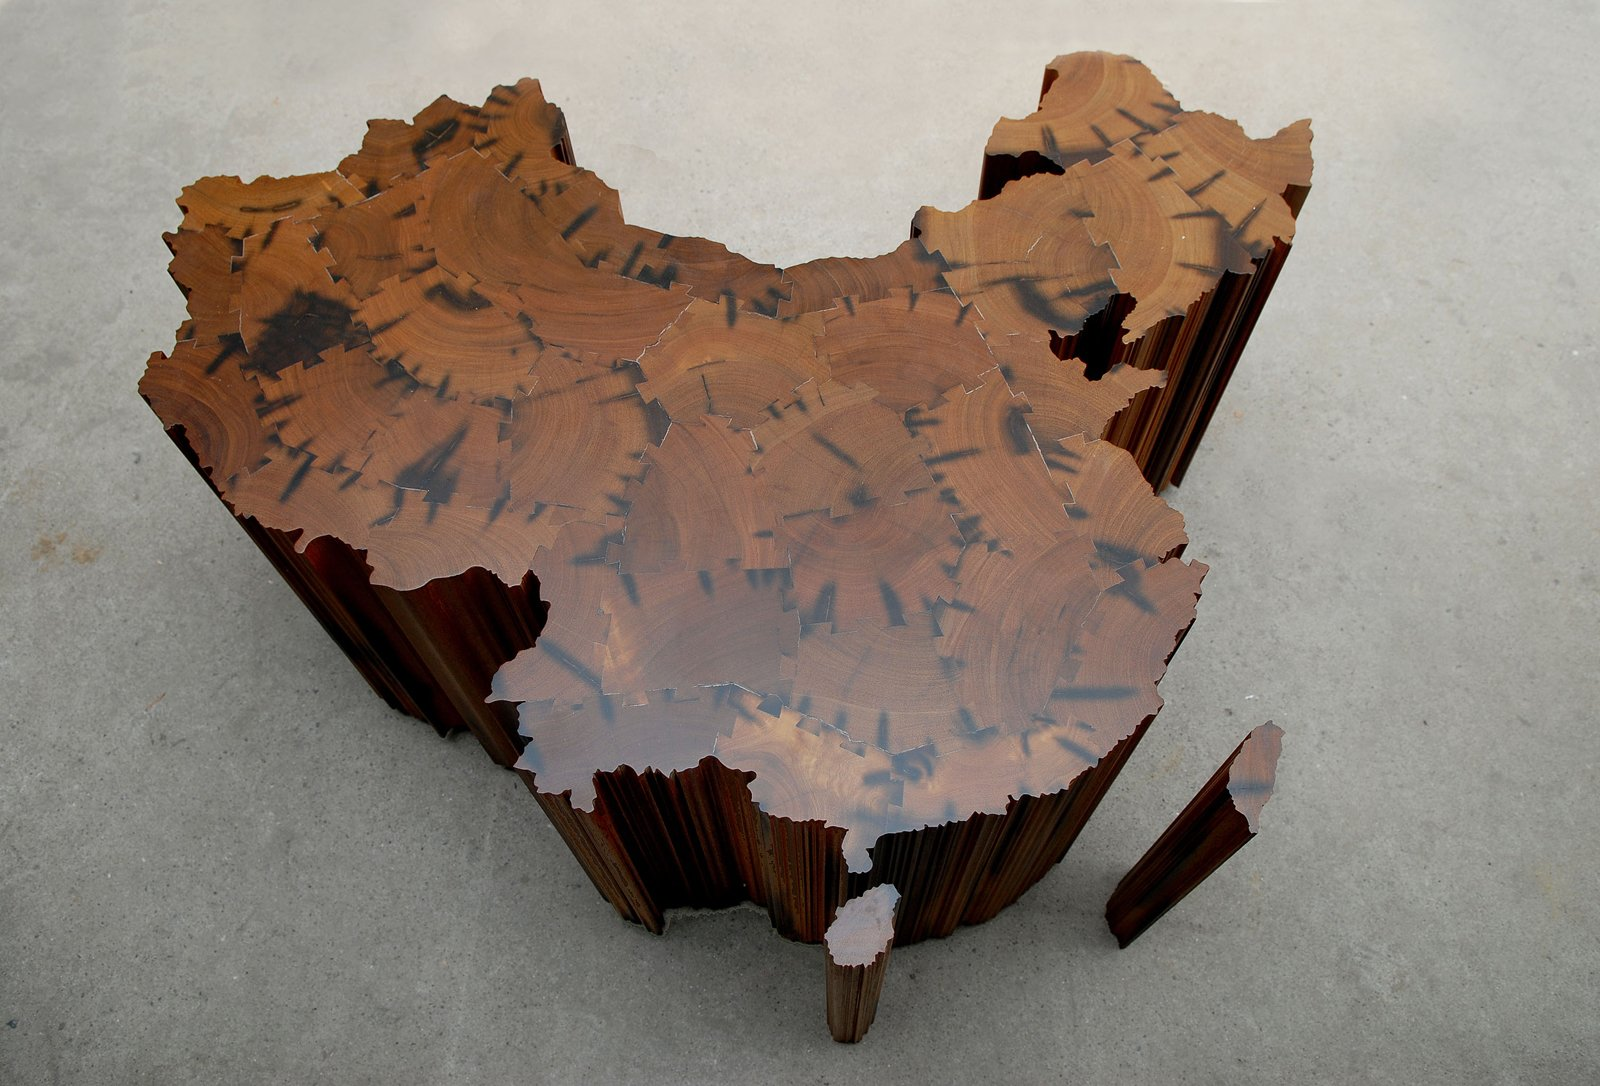 Ai Weiwei, Map of China, 2008. Image courtesy of the artist  Photo 3 of 4 in Ai Weiwei's Washington Moment